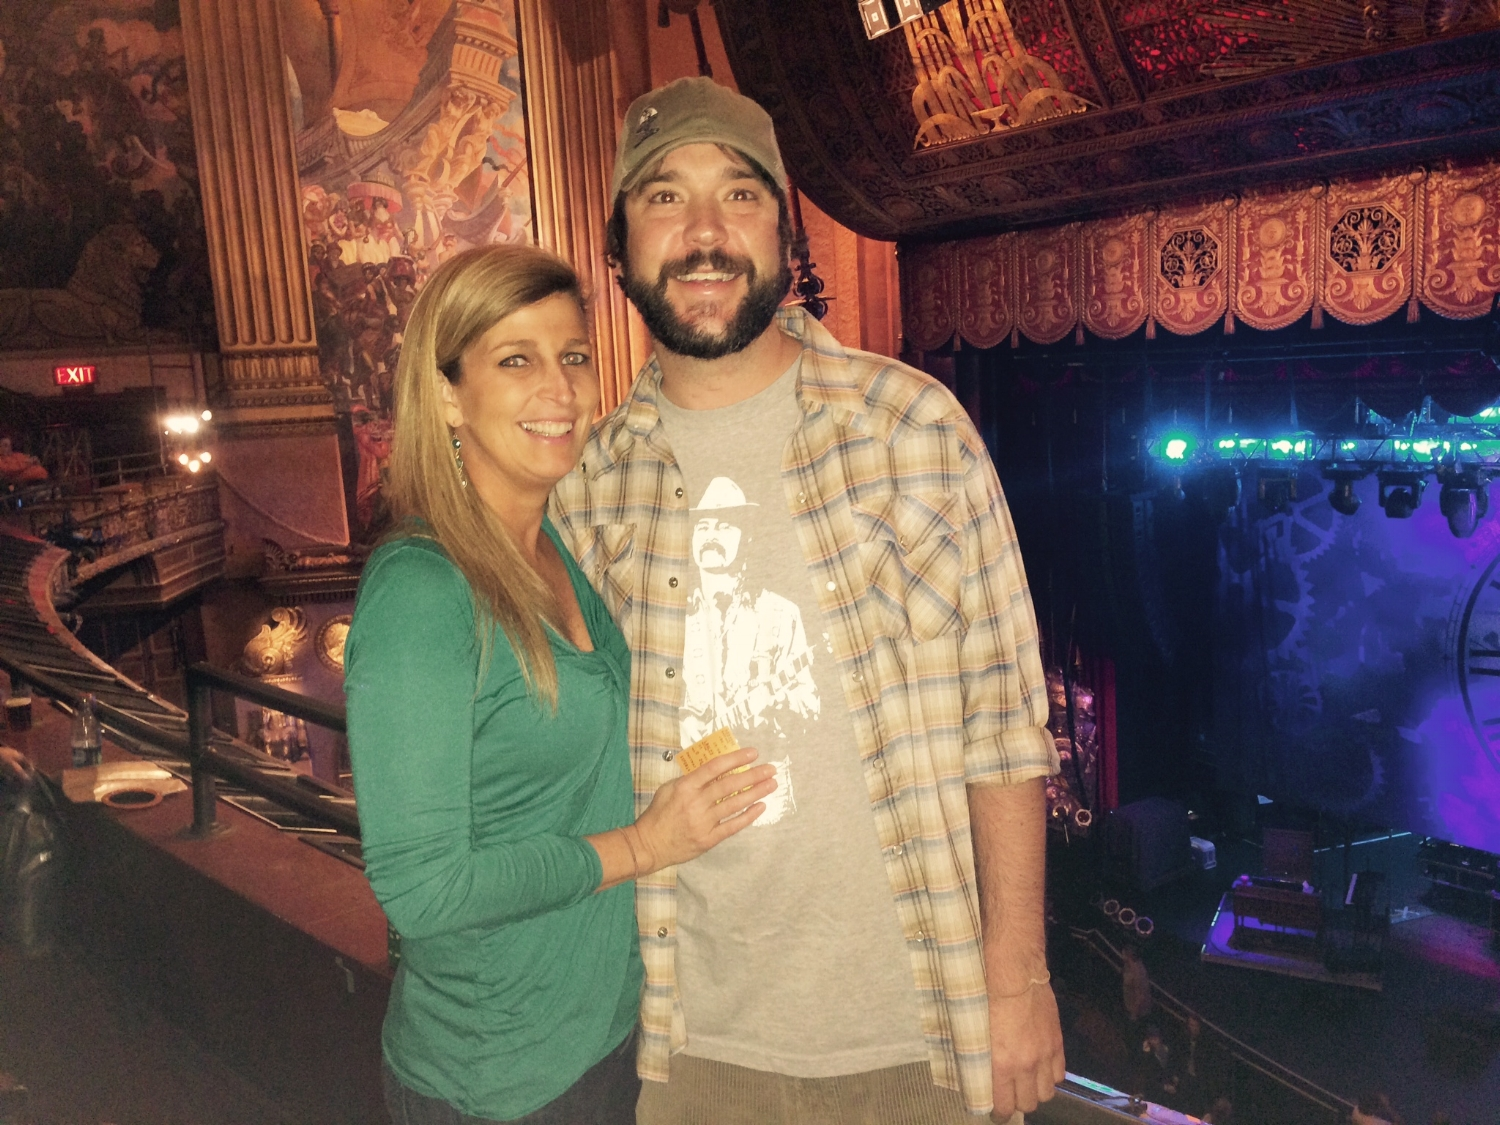 Drifter Merch owners Lorrie and Bert Griggs catching the final three Allman Brothers shows at The Beacon Theatre.